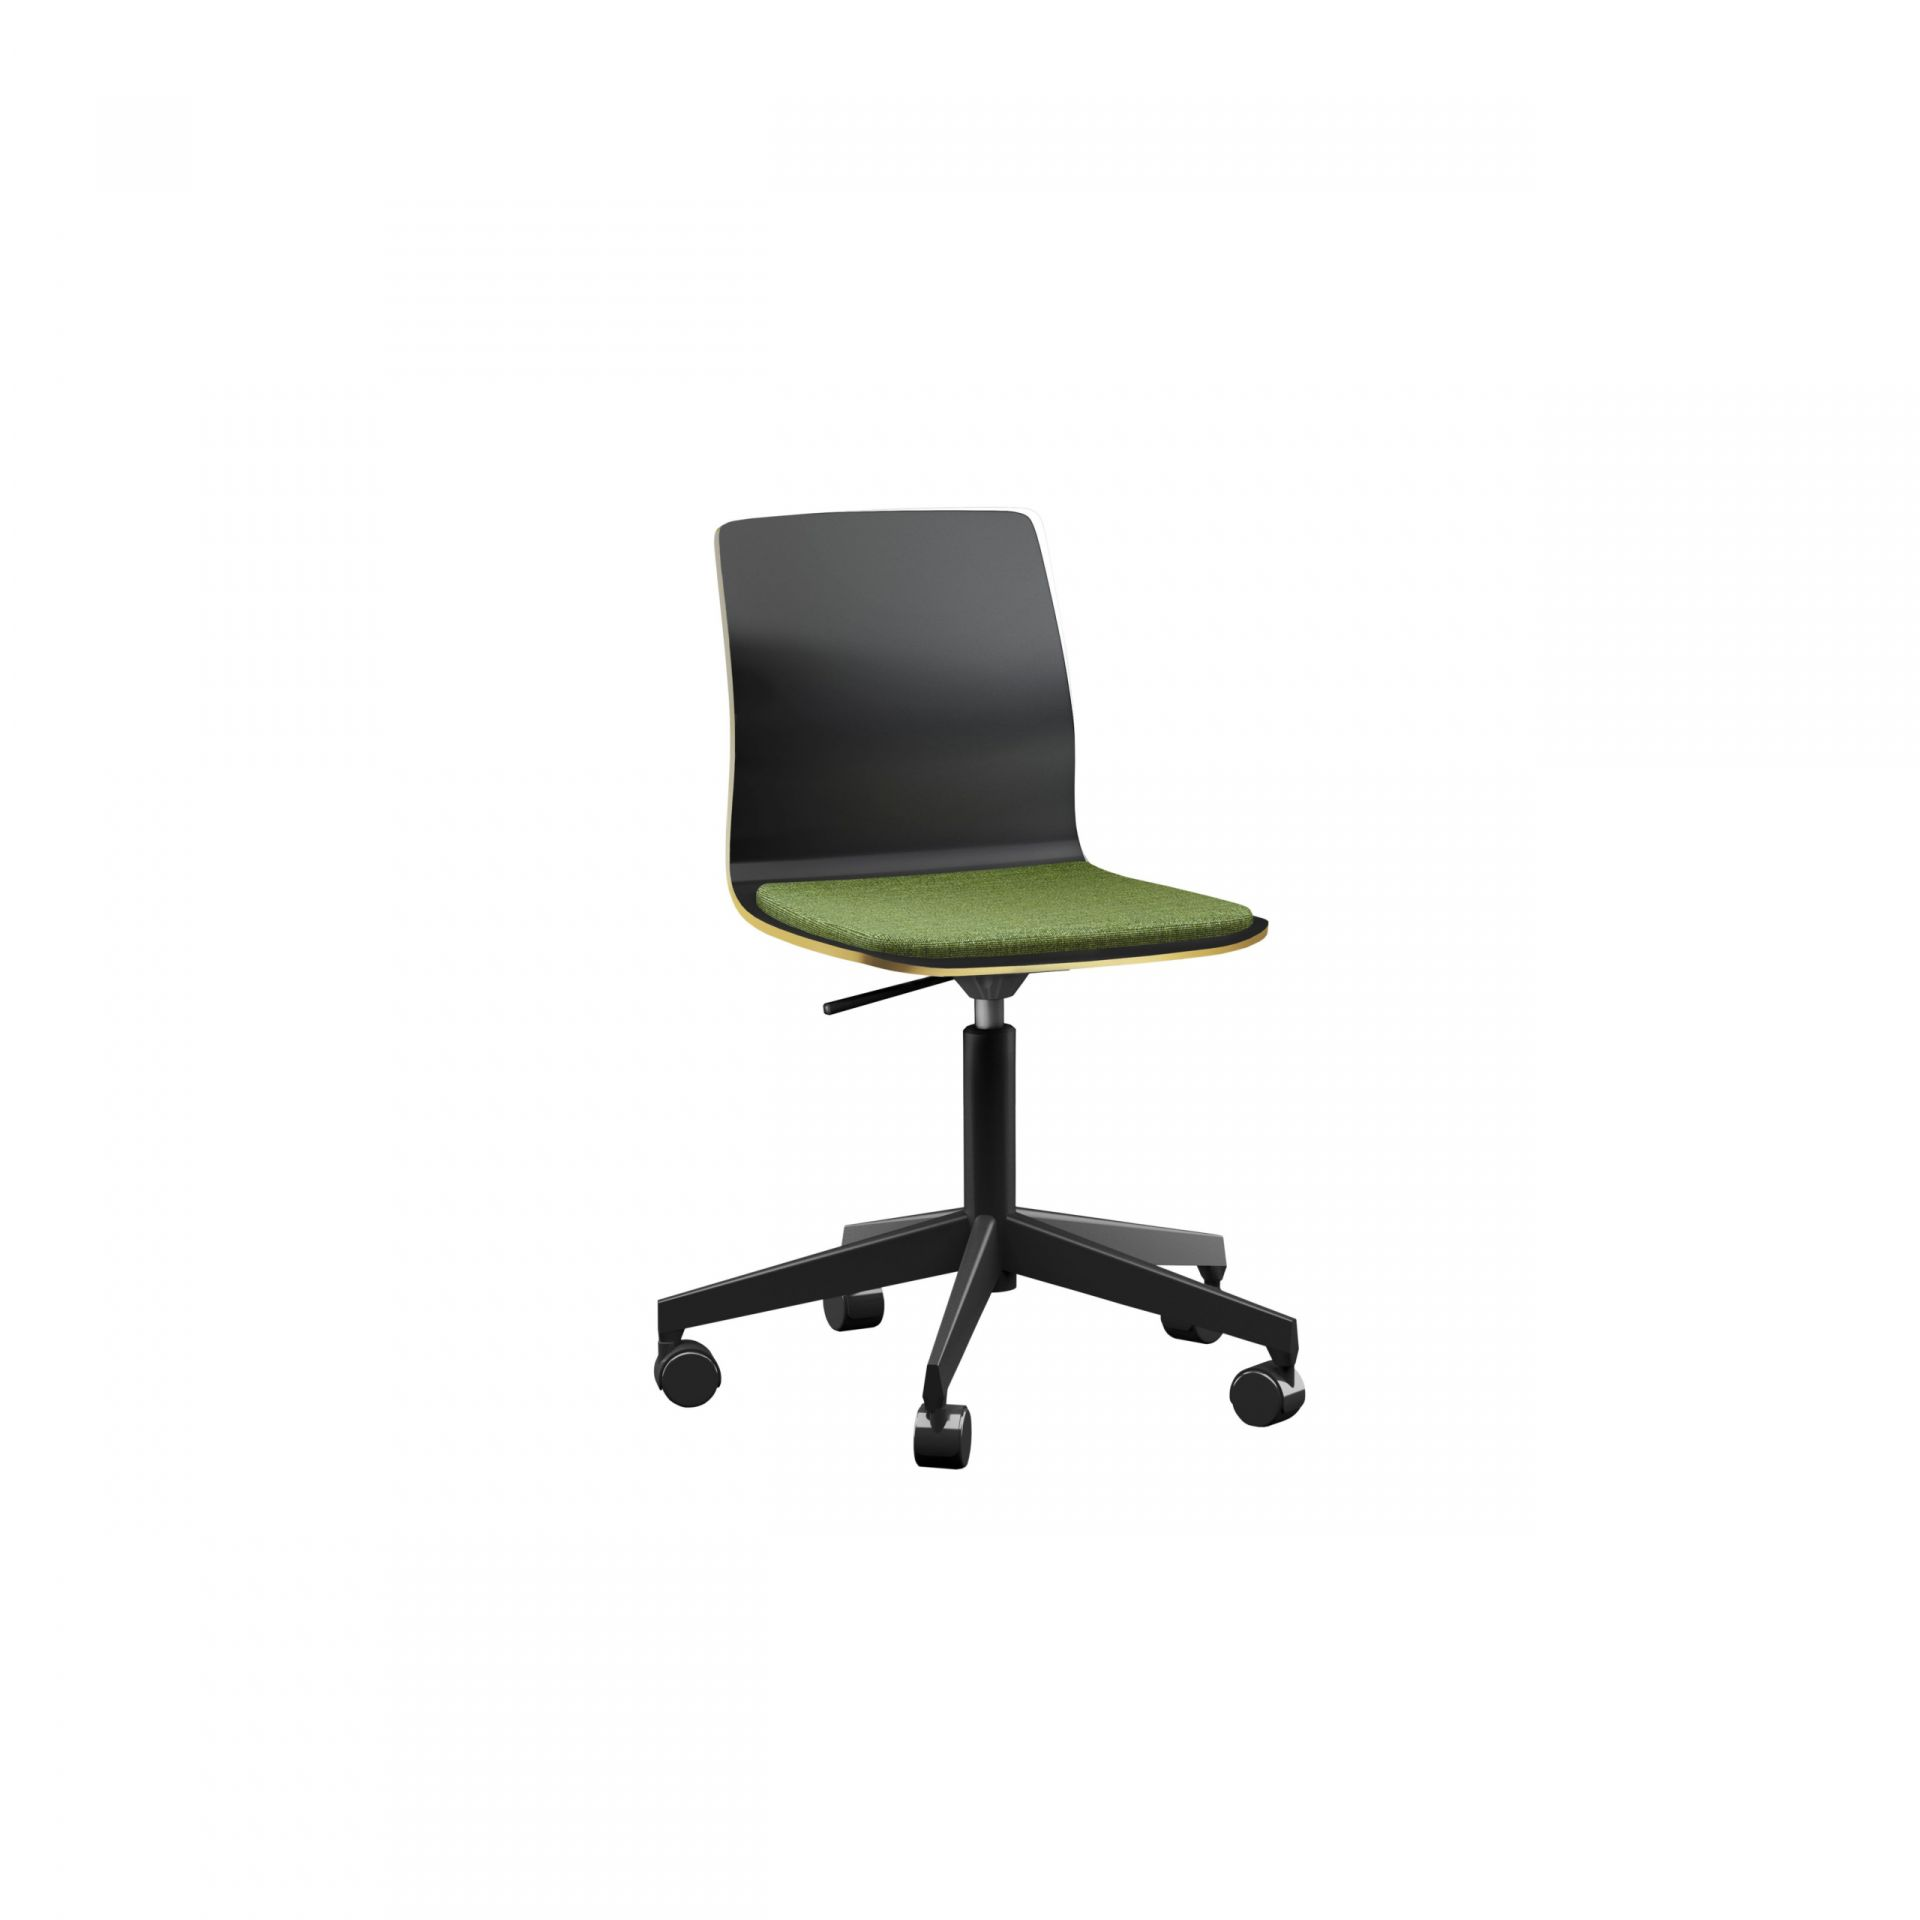 Nova Chair with swivel base product image 1